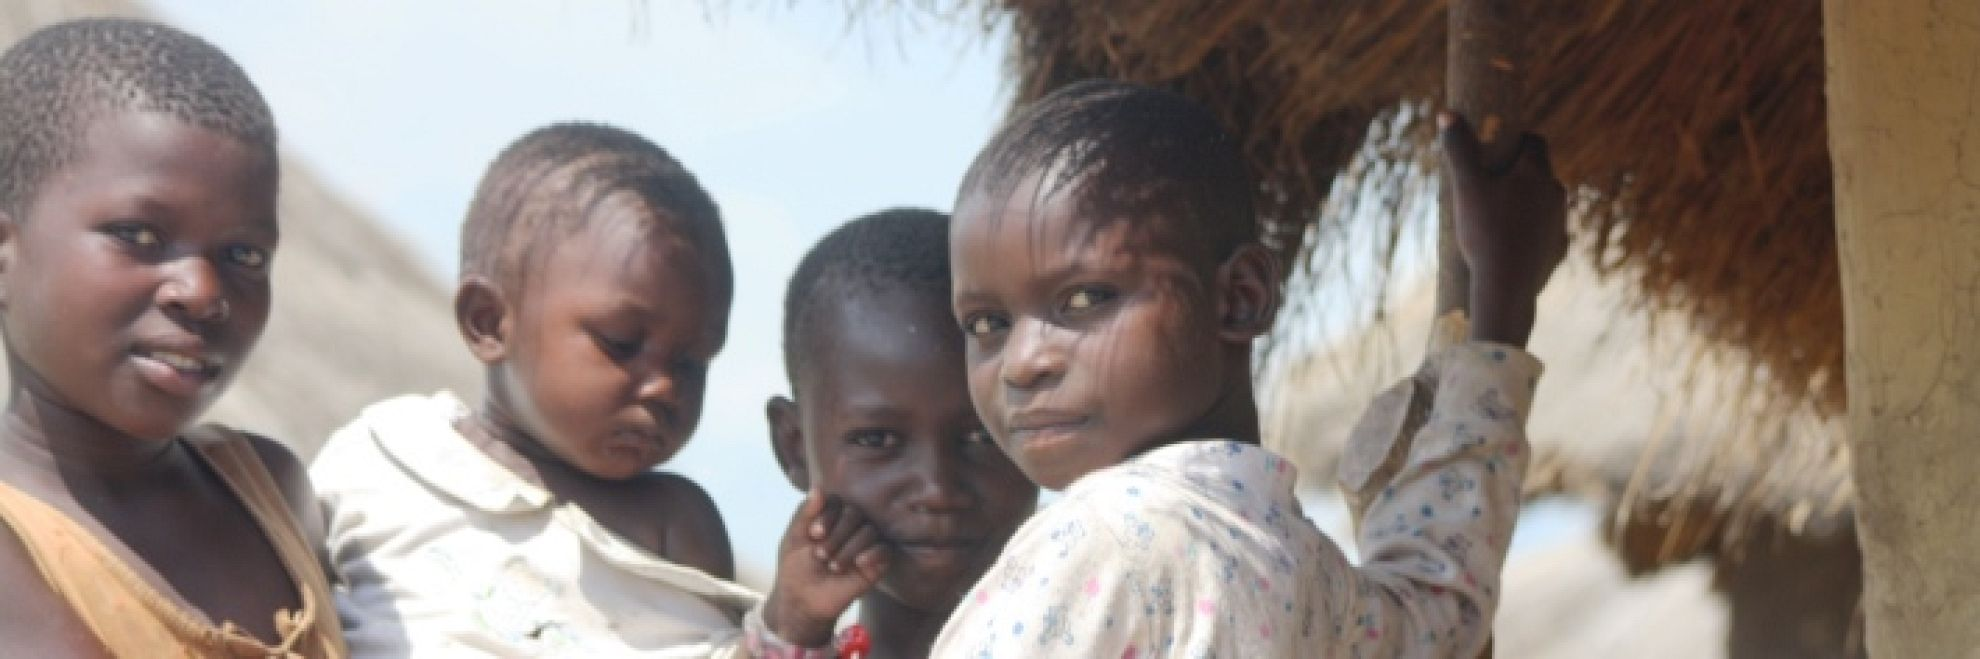 Latest News A simple guide to the mdgs global health and what comes next